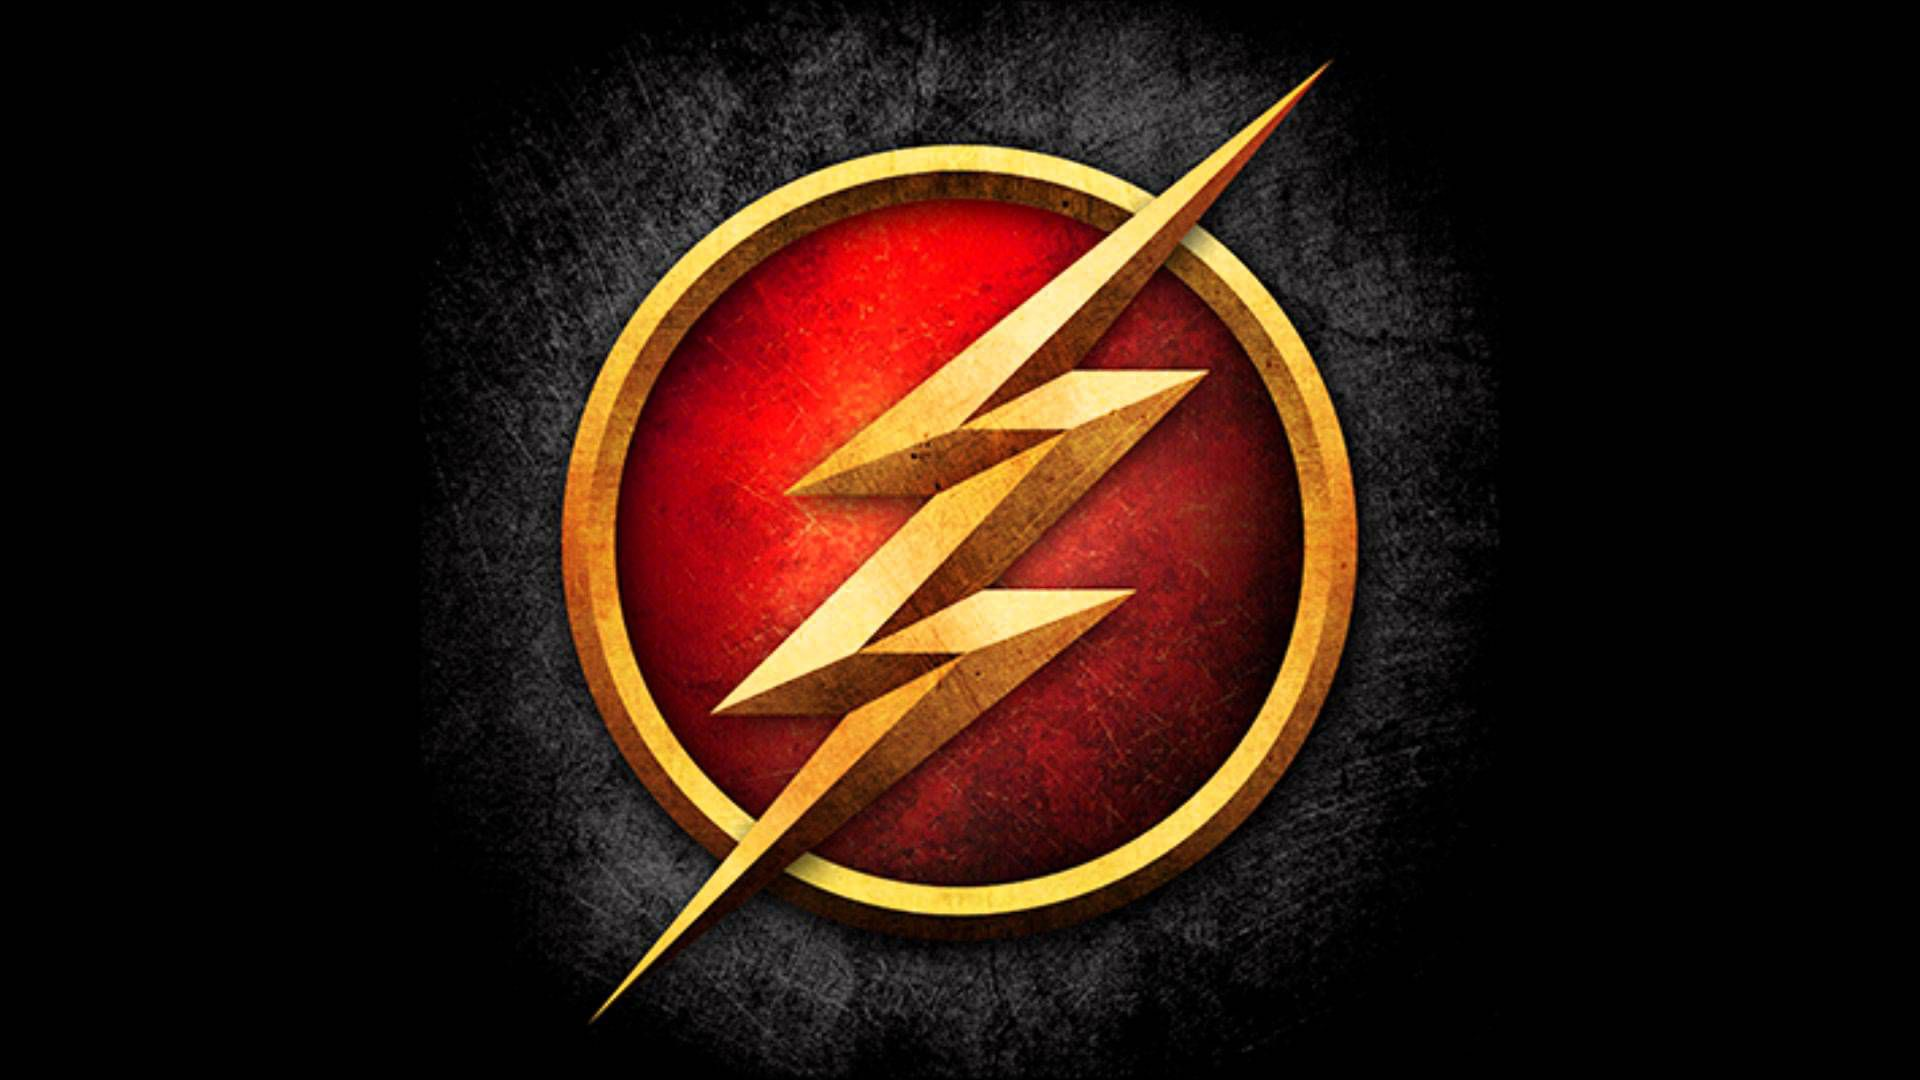 the flash wallpaper hd Download 1920×1200 The Flash